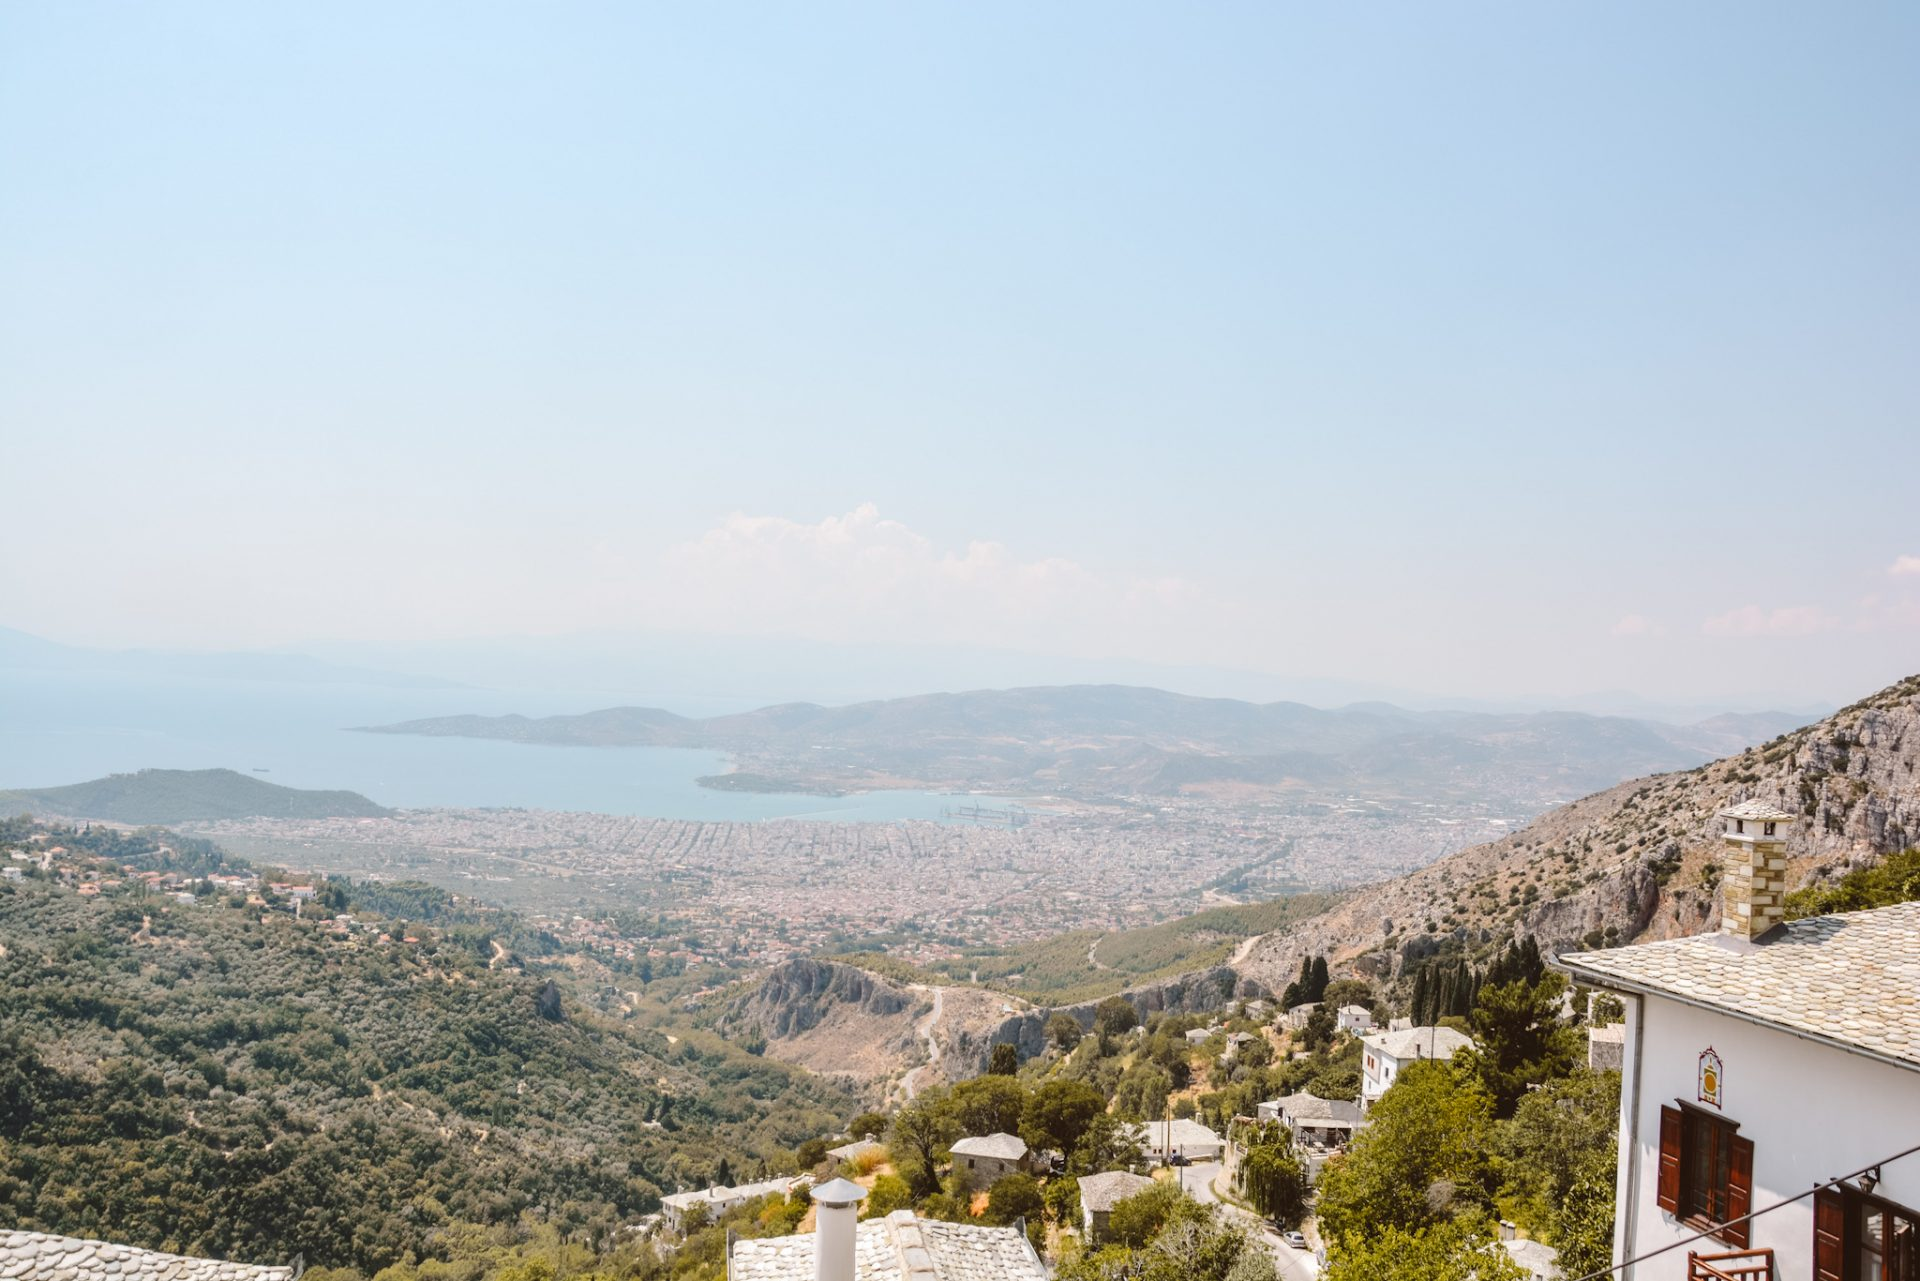 Travel guide to Pelion, Greece with top things to do in Pelion